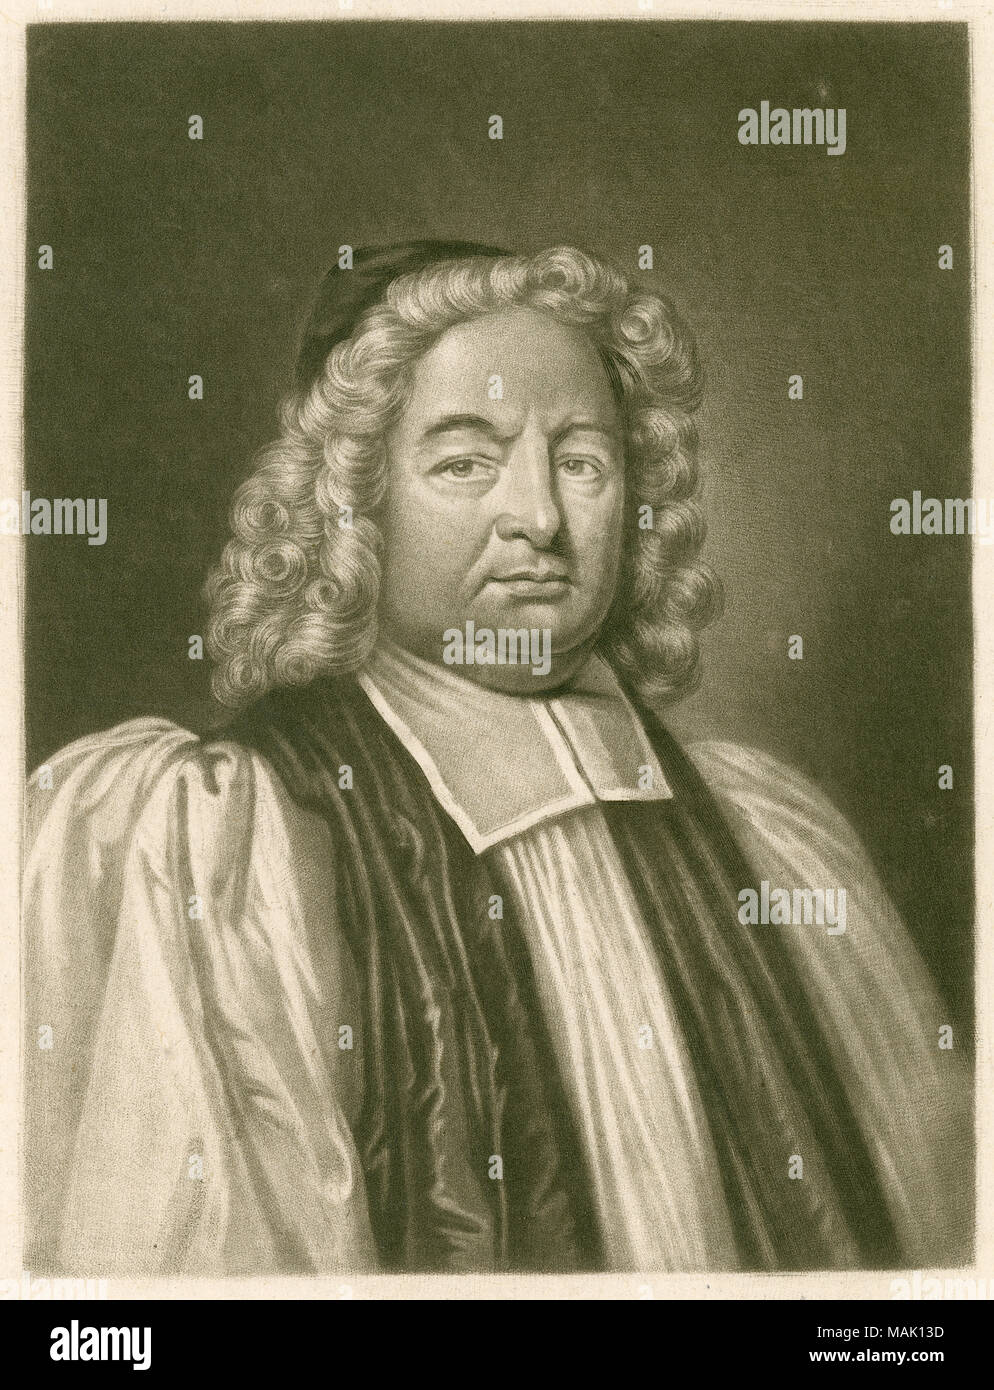 Antique 1813 copper engraving, Michael Boyle. Michael Boyle, the younger (1609-1702) was a Church of Ireland bishop who served as Archbishop of Dublin from 1663 to 1679 and Archbishop of Armagh from 1679 to his death. SOURCE: ORIGINAL ENGRAVING - Stock Image